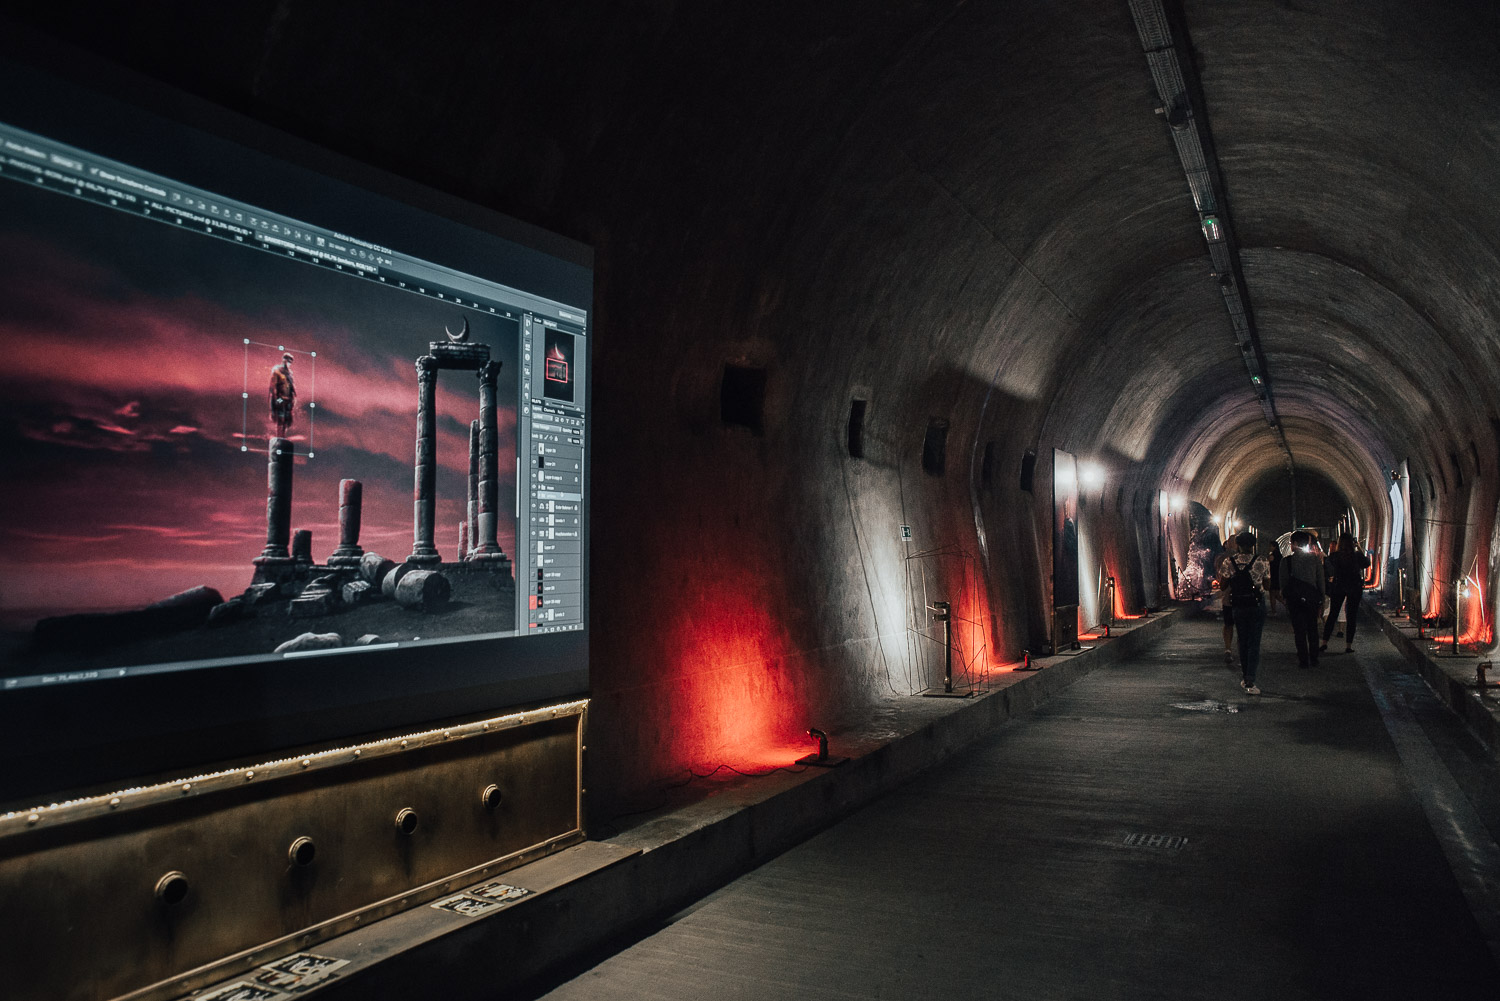 Photoshop Art Installation in Grič Tunnel